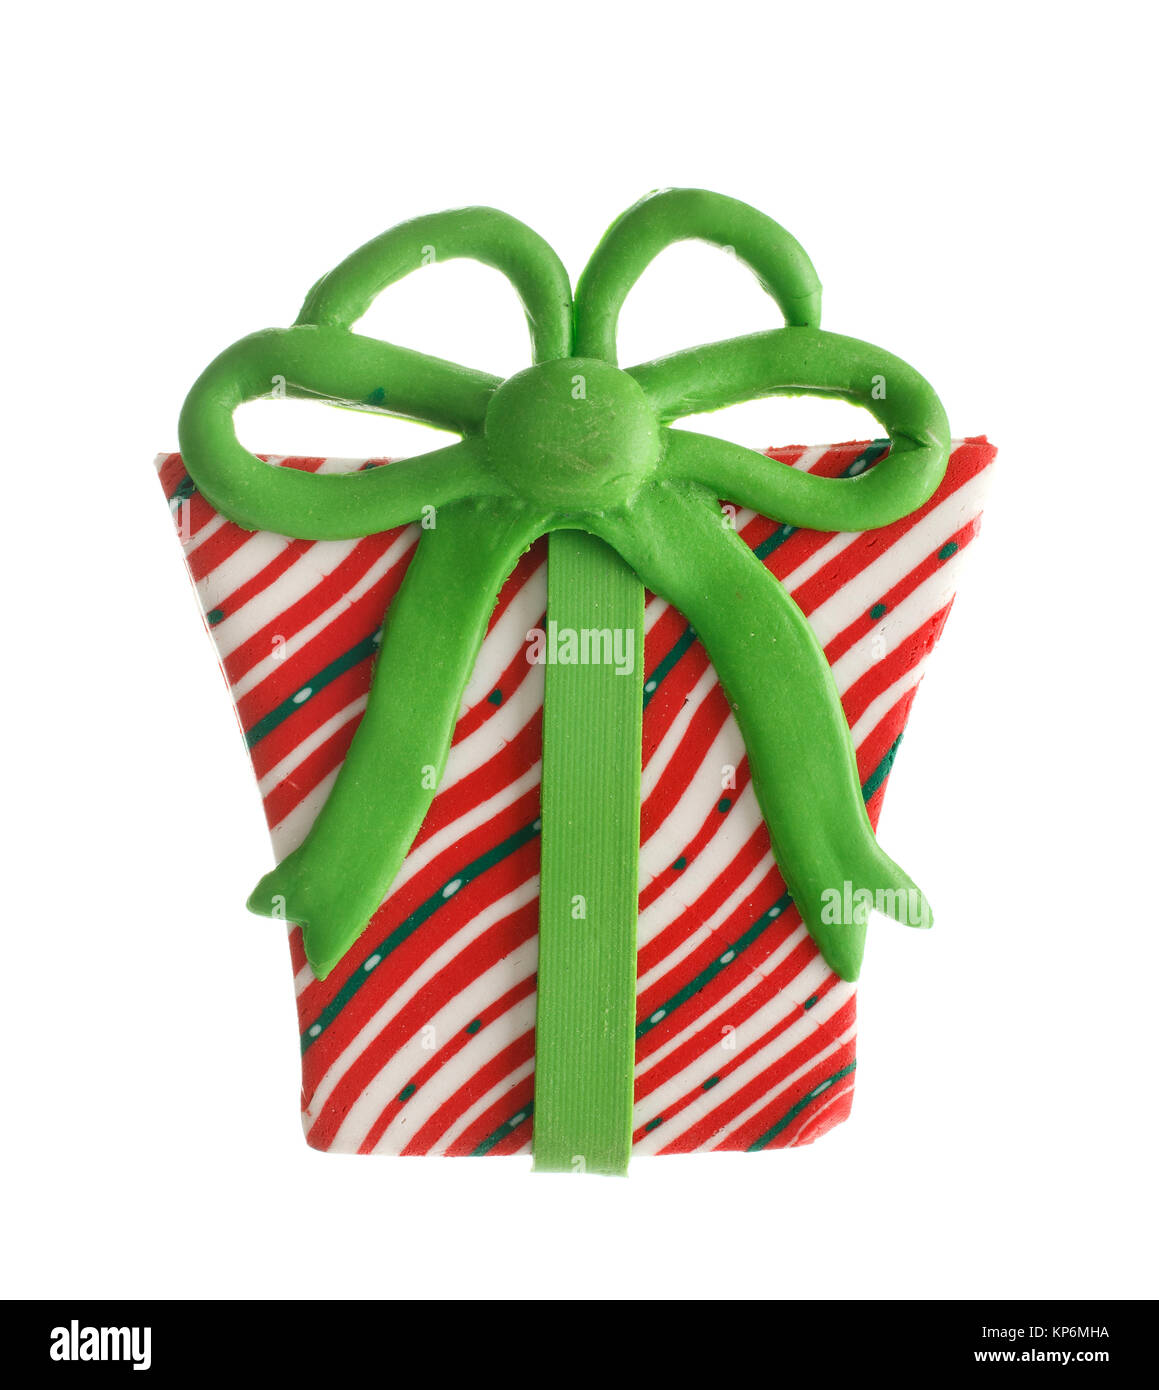 Gag Gift Stock Photos & Gag Gift Stock Images - Alamy